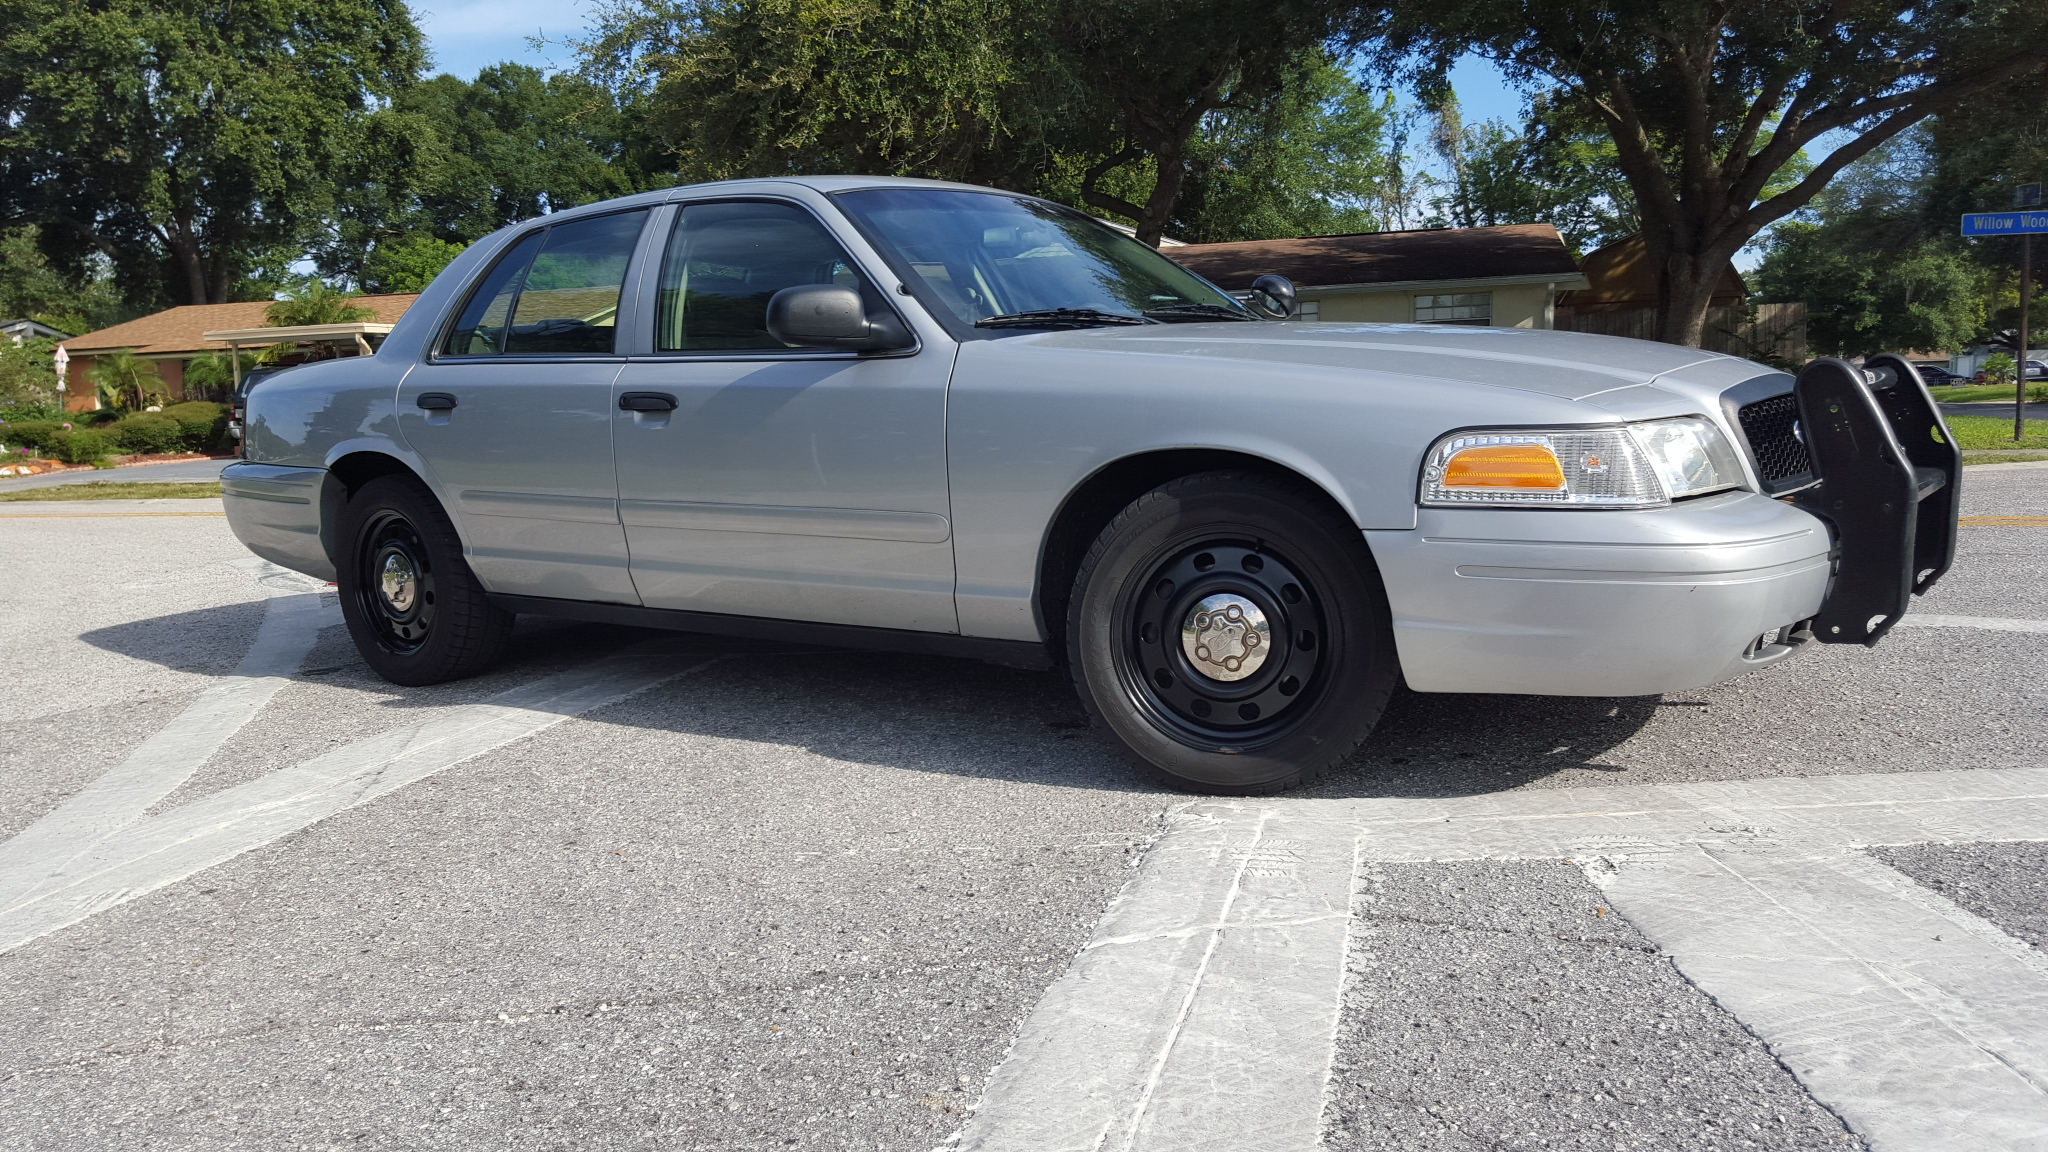 2006 Silver Unmarked Crown Victoria P71 Police